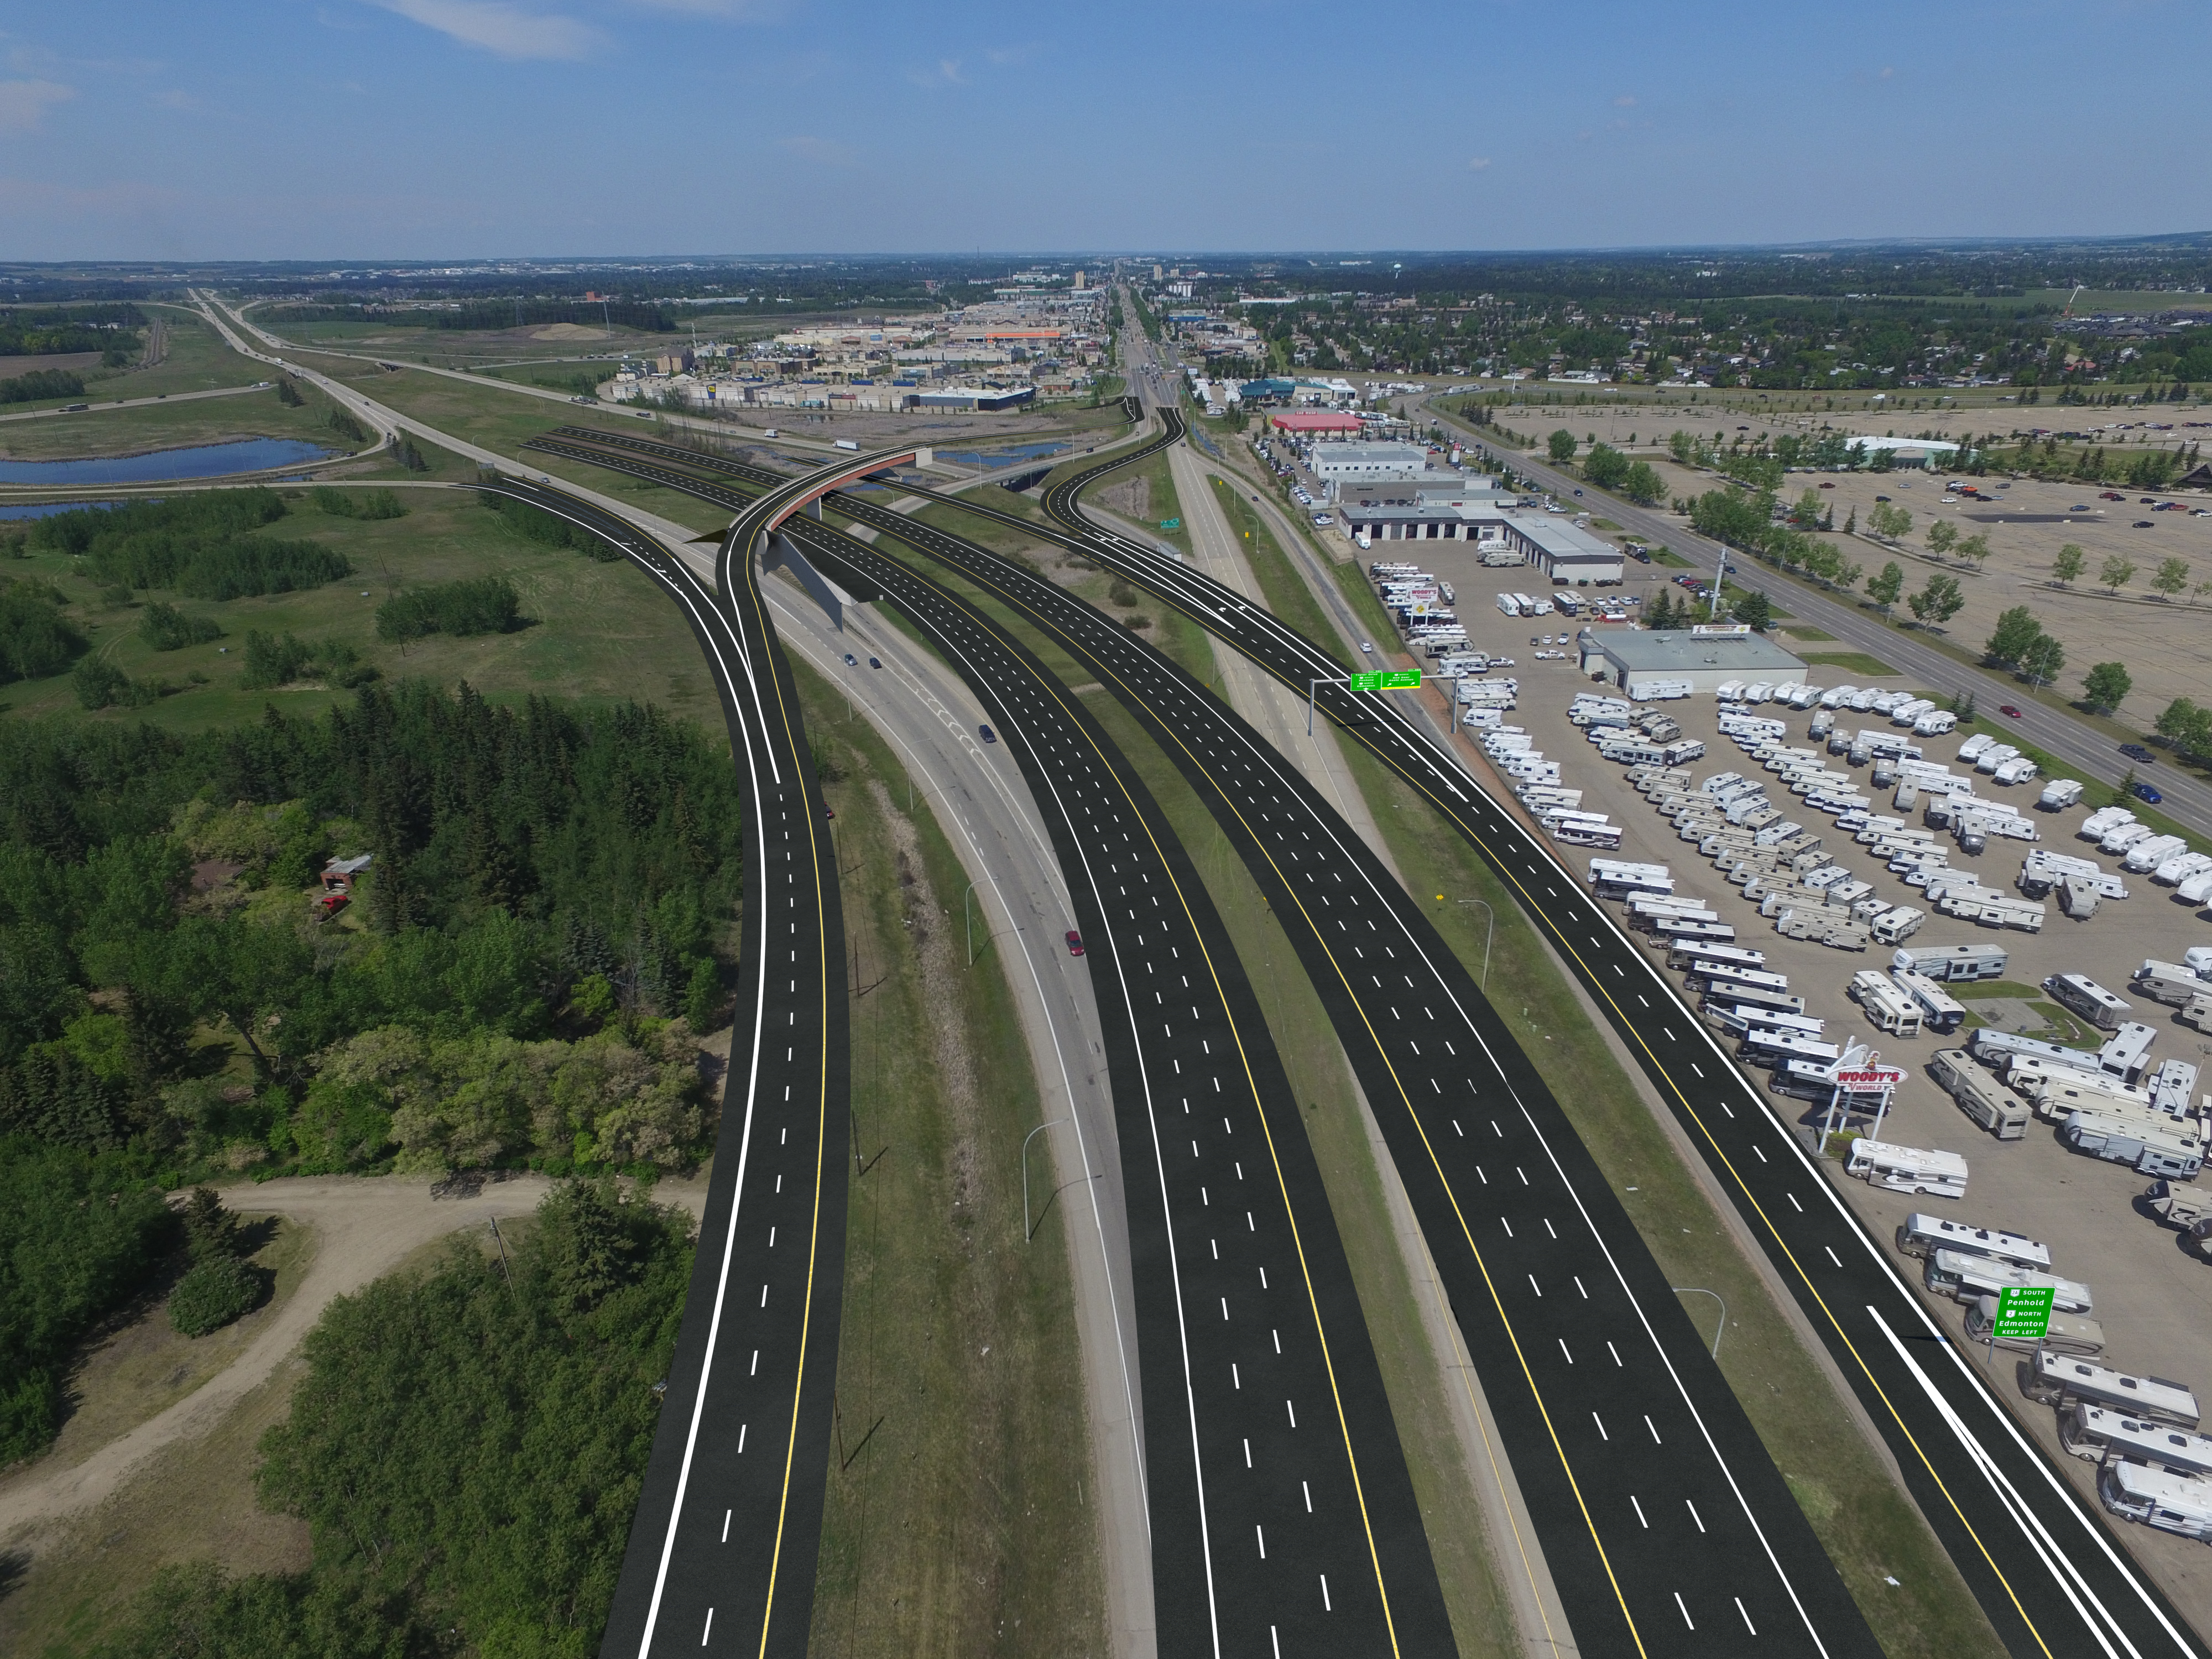 Road construction infrastructure is planned to be built in the North of Moscow 35